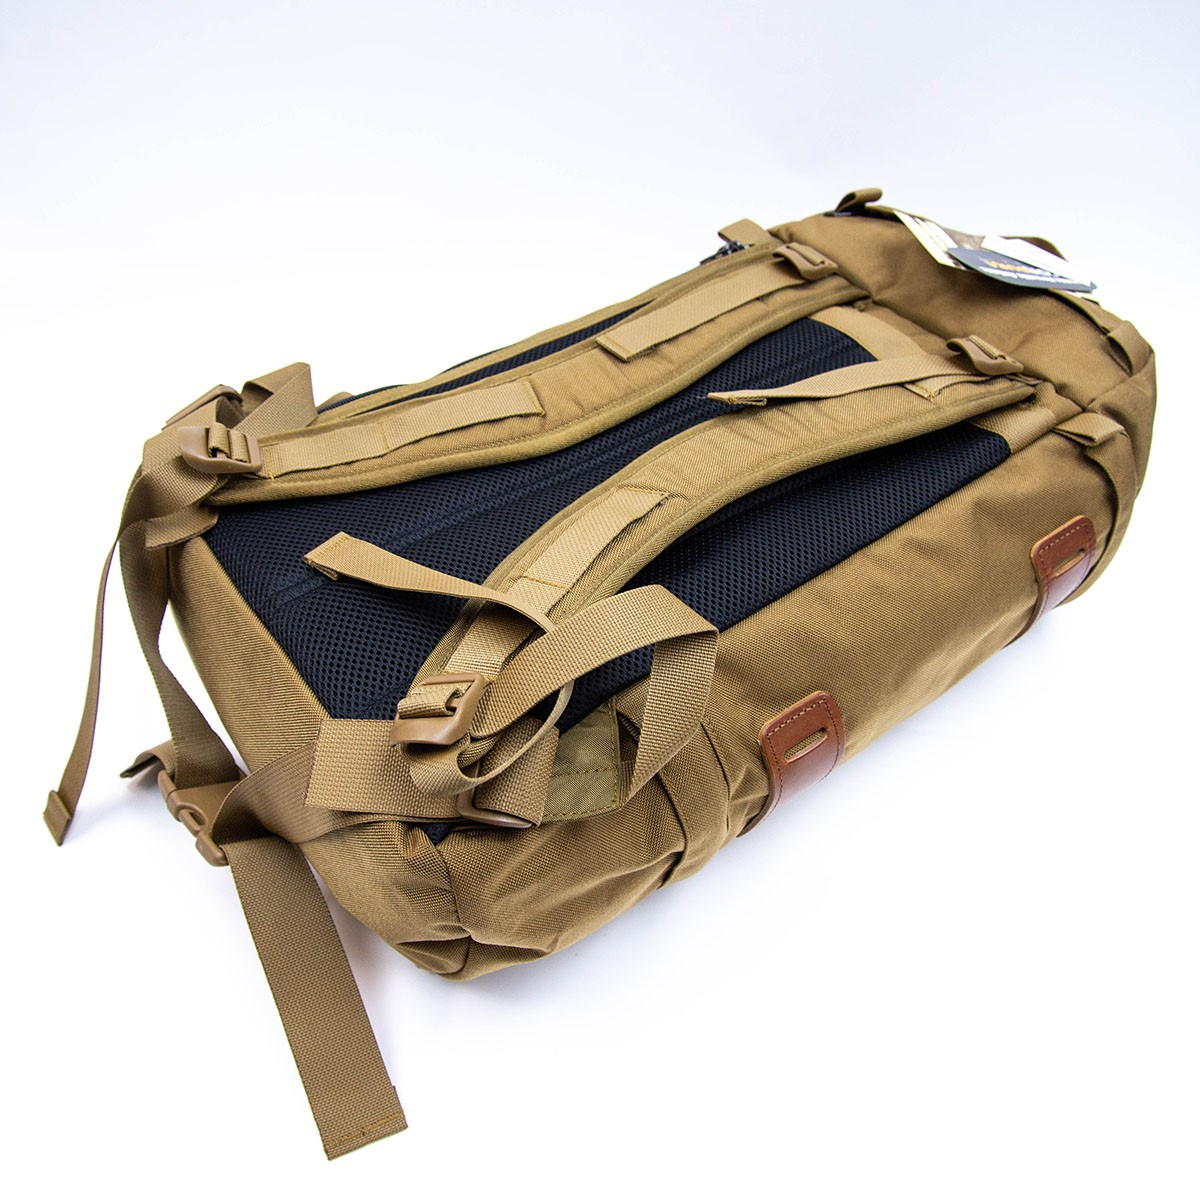 Wilderness Experience Better Wrap Around Backpack Coyote 狼棕色 35L 大容量山系背囊 - 背囊 Backpack ...